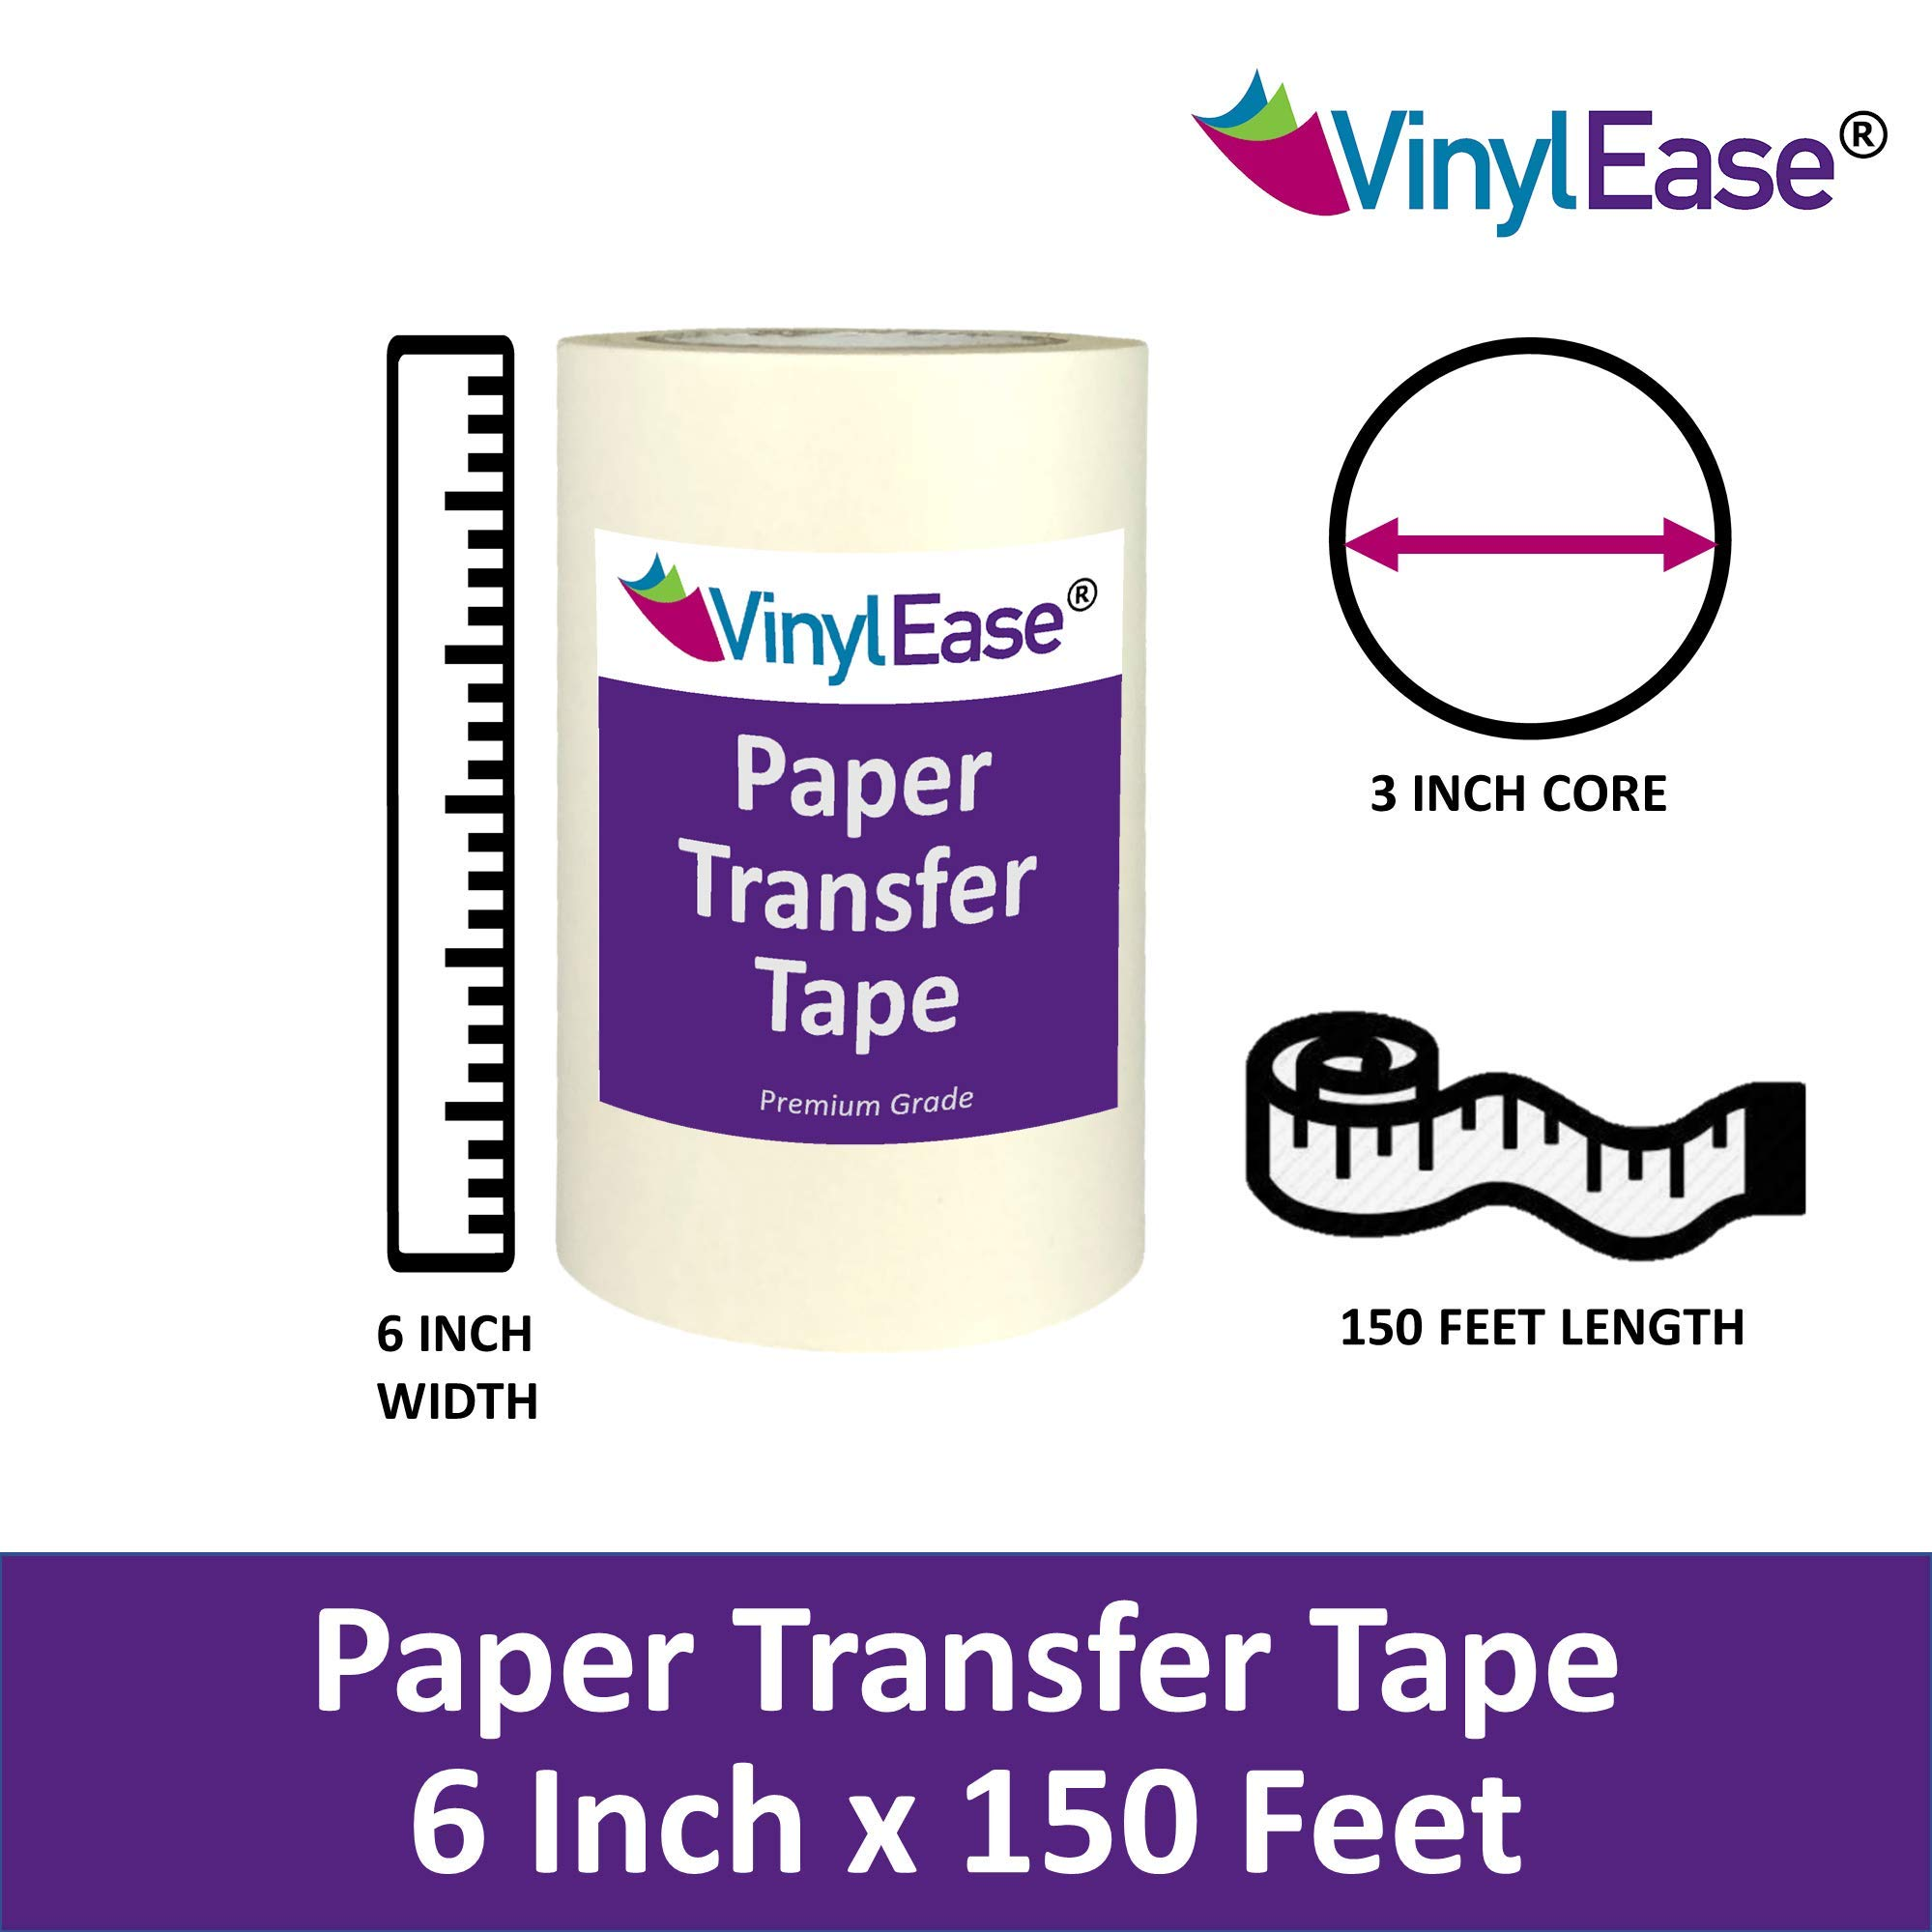 V0843 Works with a Variety of Vinyl Wall Words and More Signs Vinyl Ease 6 inch x 150 feet roll of Paper Transfer Tape with a Medium Tack Layflat Adhesive Great for Decals